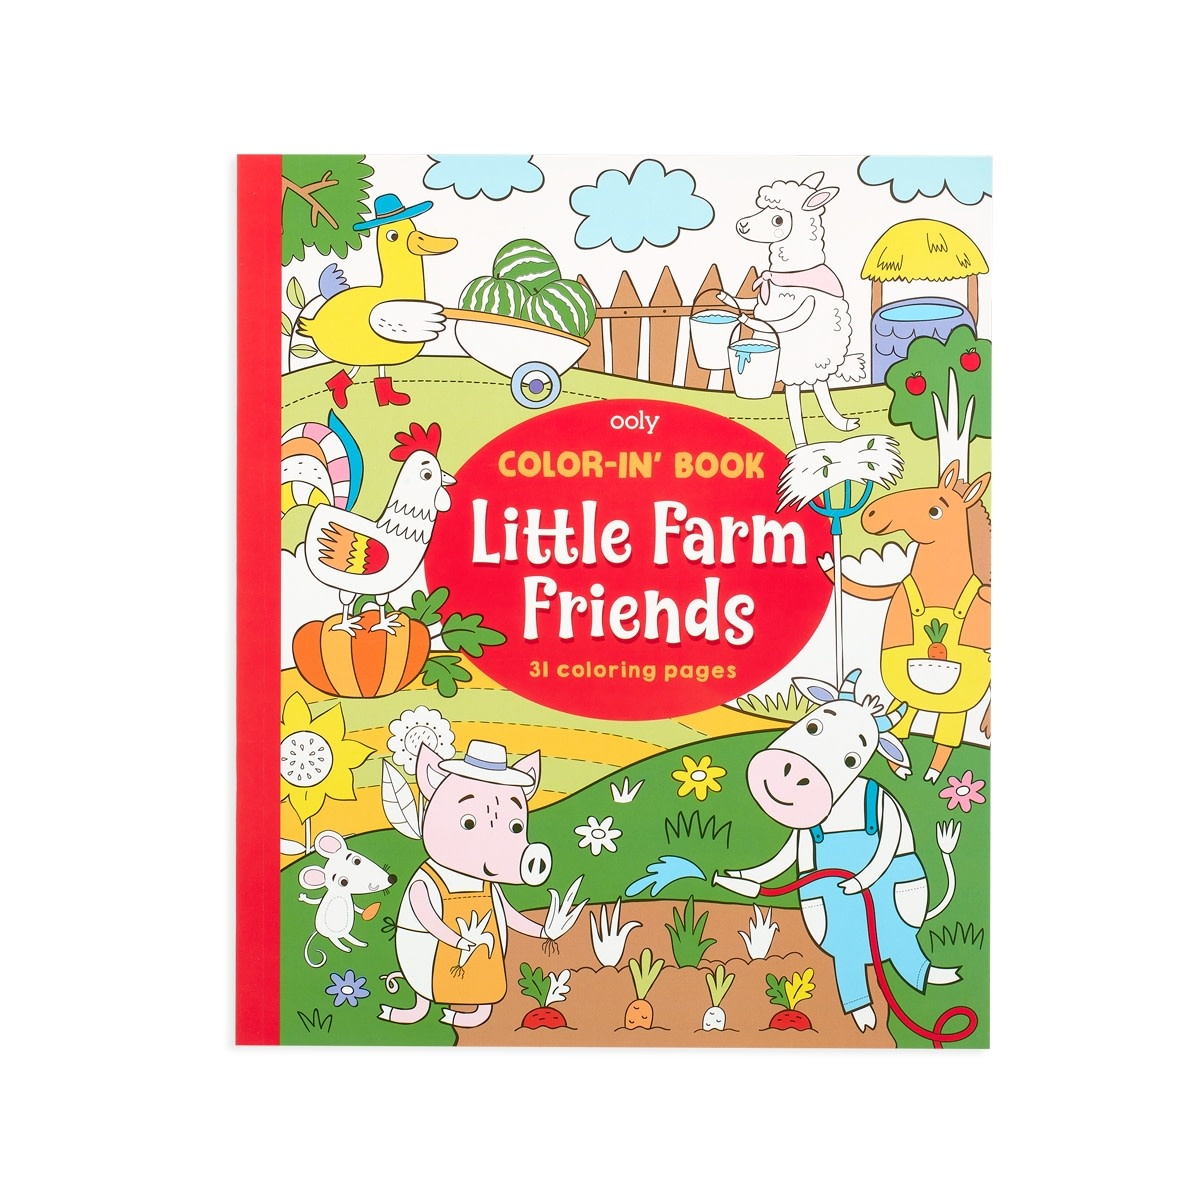 "Ooly Color-in' Book: Little Farm Friends (8"" x 10"")"